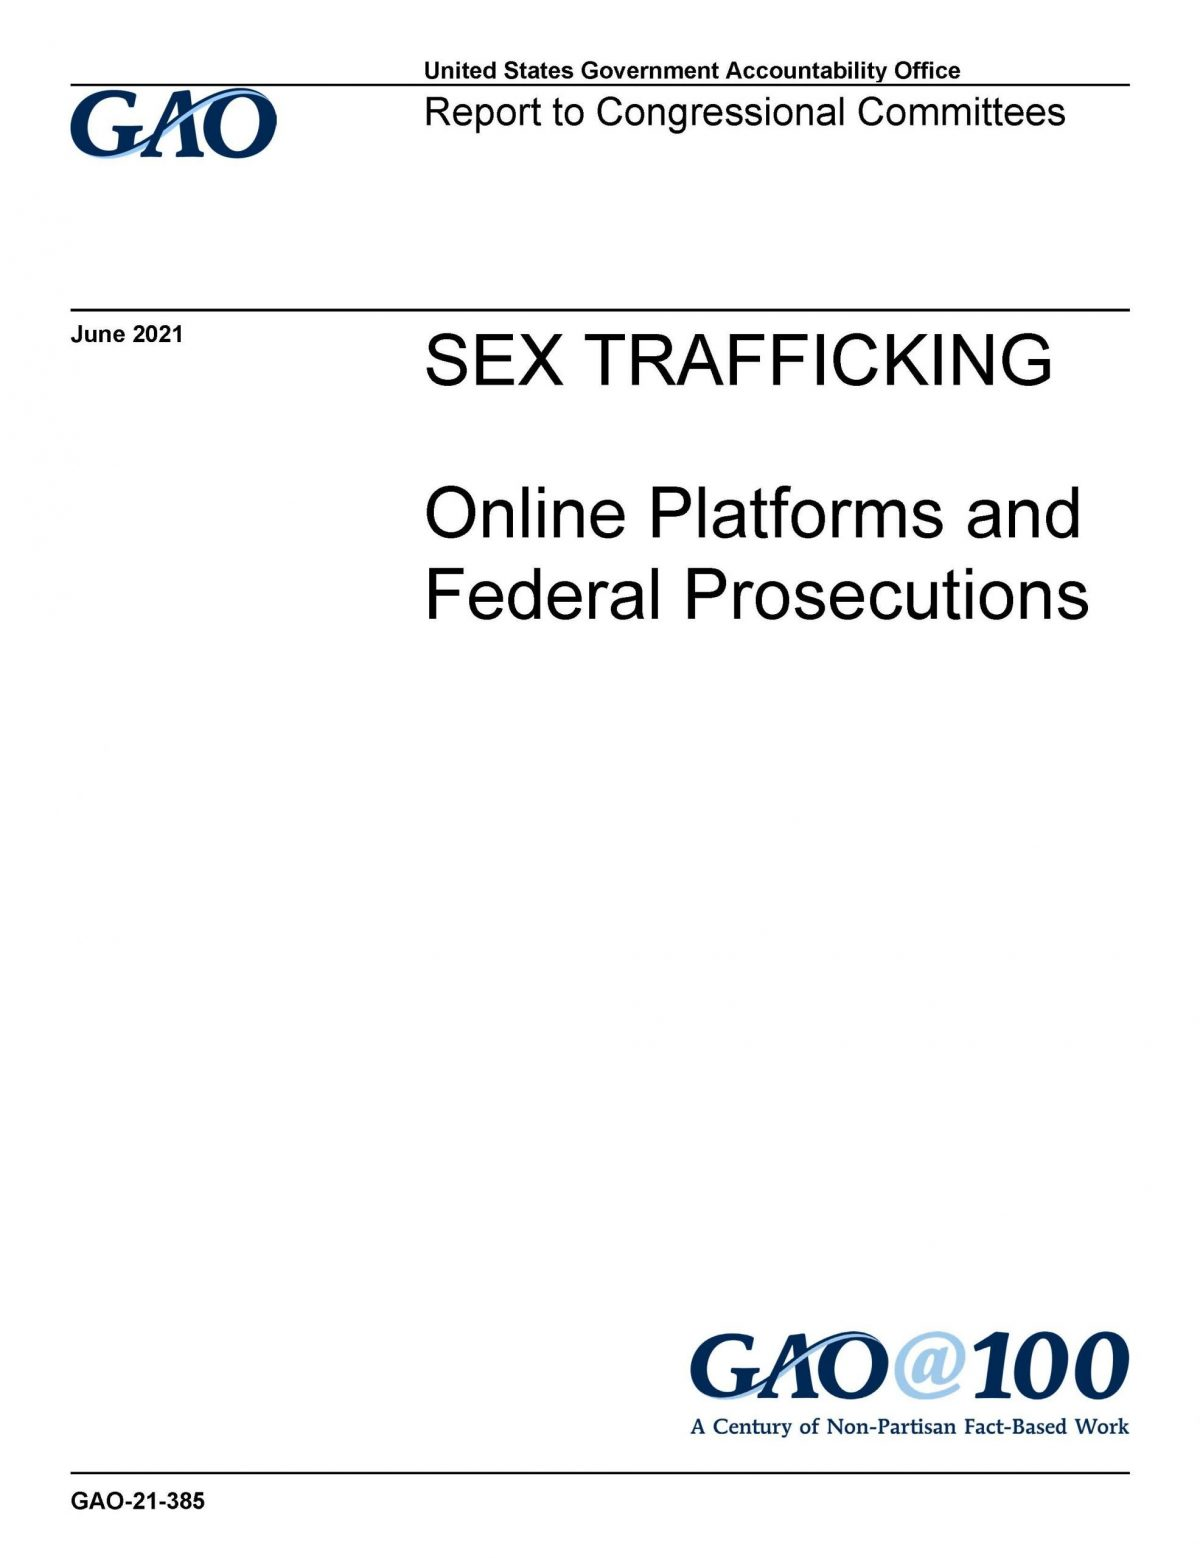 GAO-21-385, Sex Trafficking_ Online Platforms and Federal Prosecutions